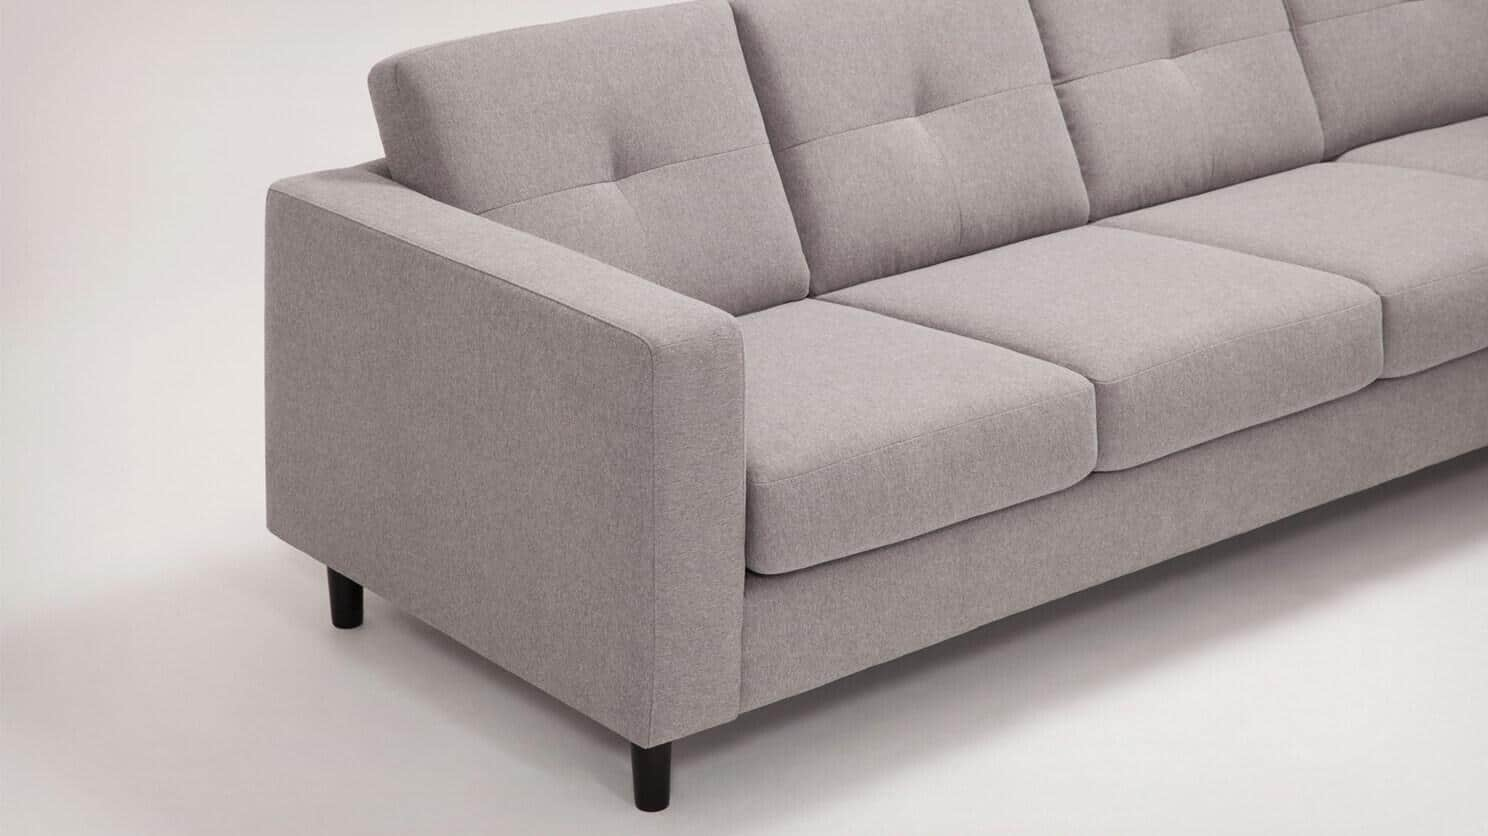 30129 ss s 4 sectionals solo sectional sofa mila silver detail 02